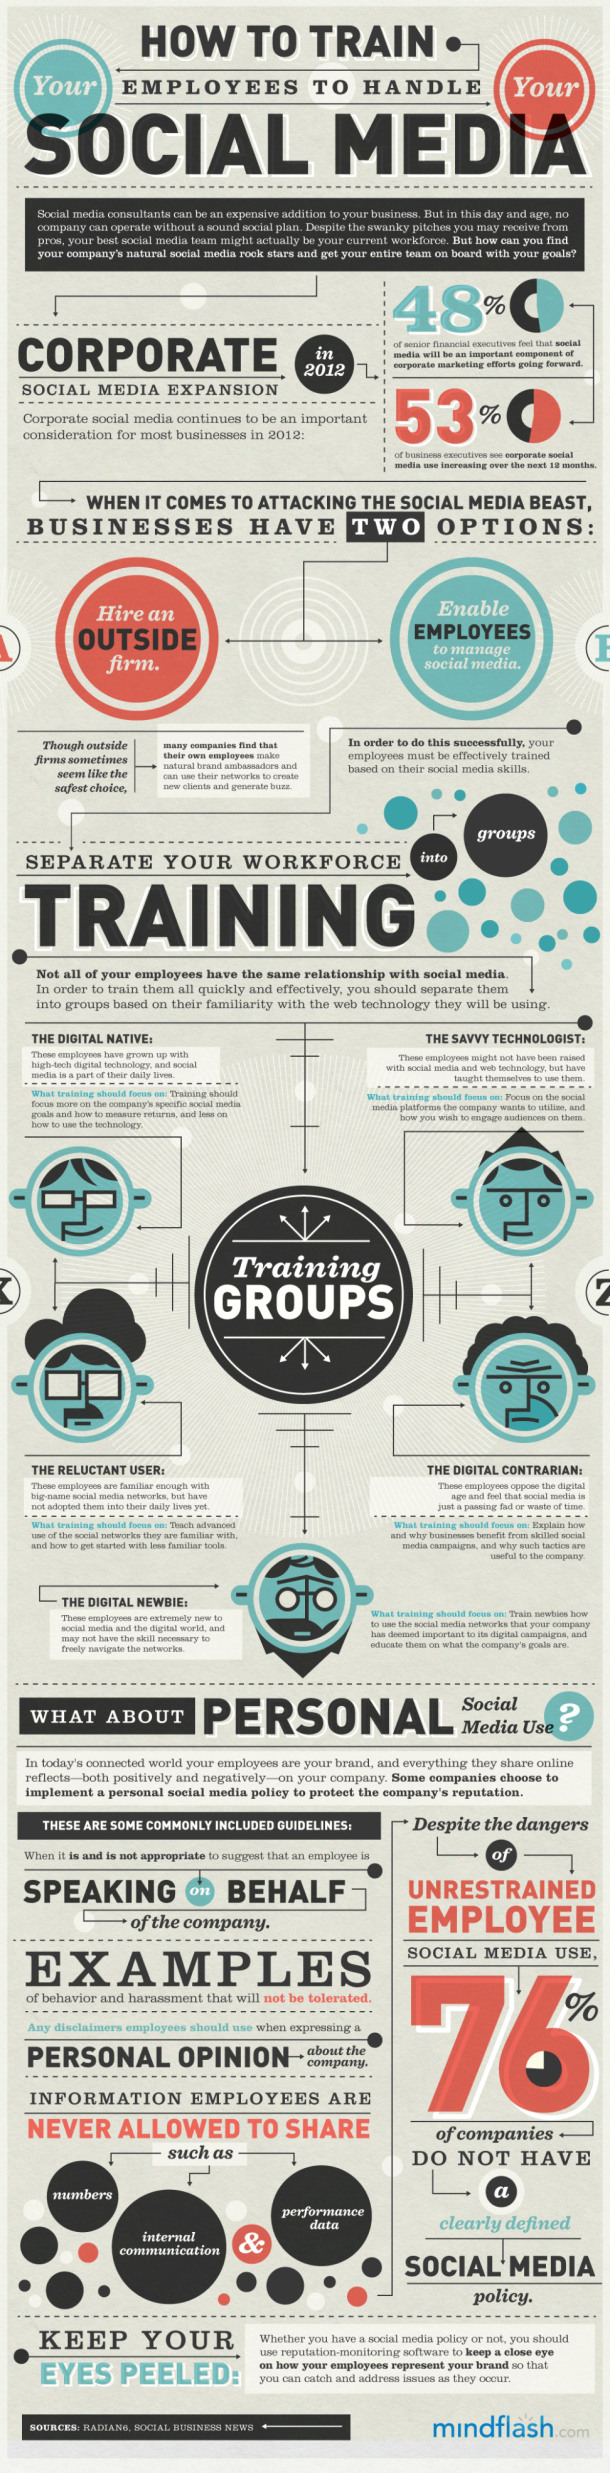 How to train employees to handle social media (infographic)